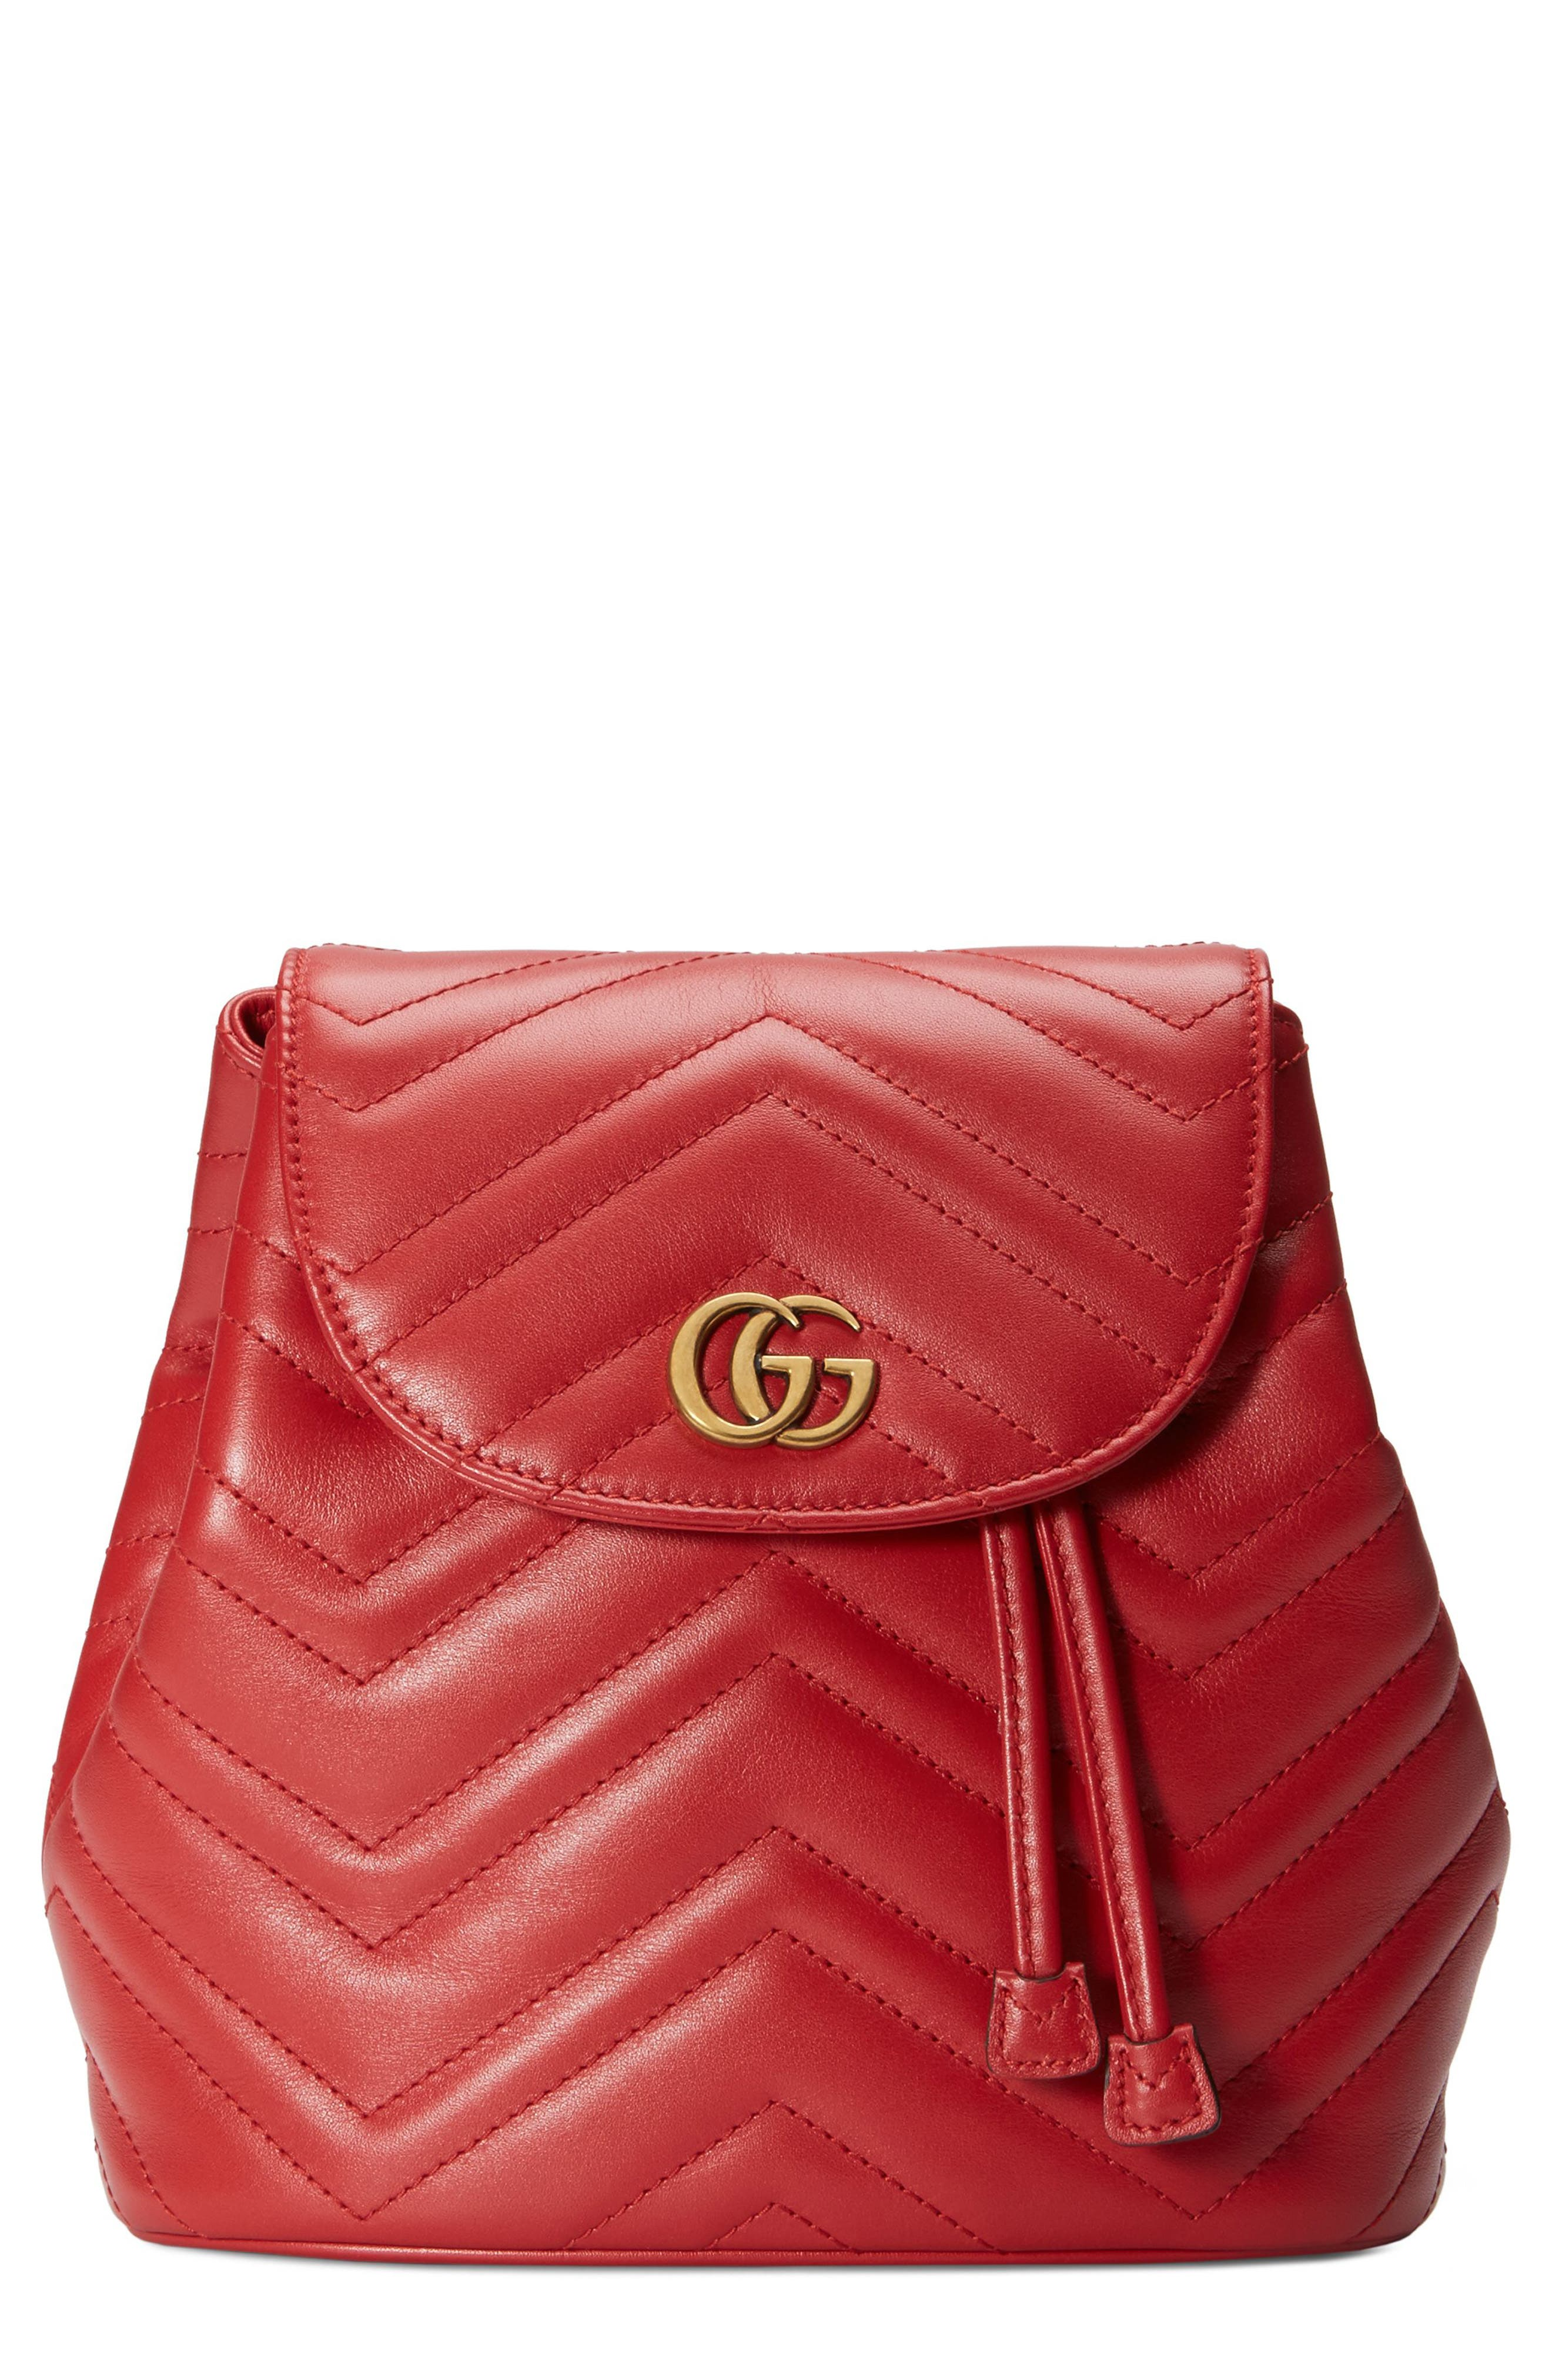 a84e8594569 Buy gucci backpacks for women - Best women s gucci backpacks shop ...